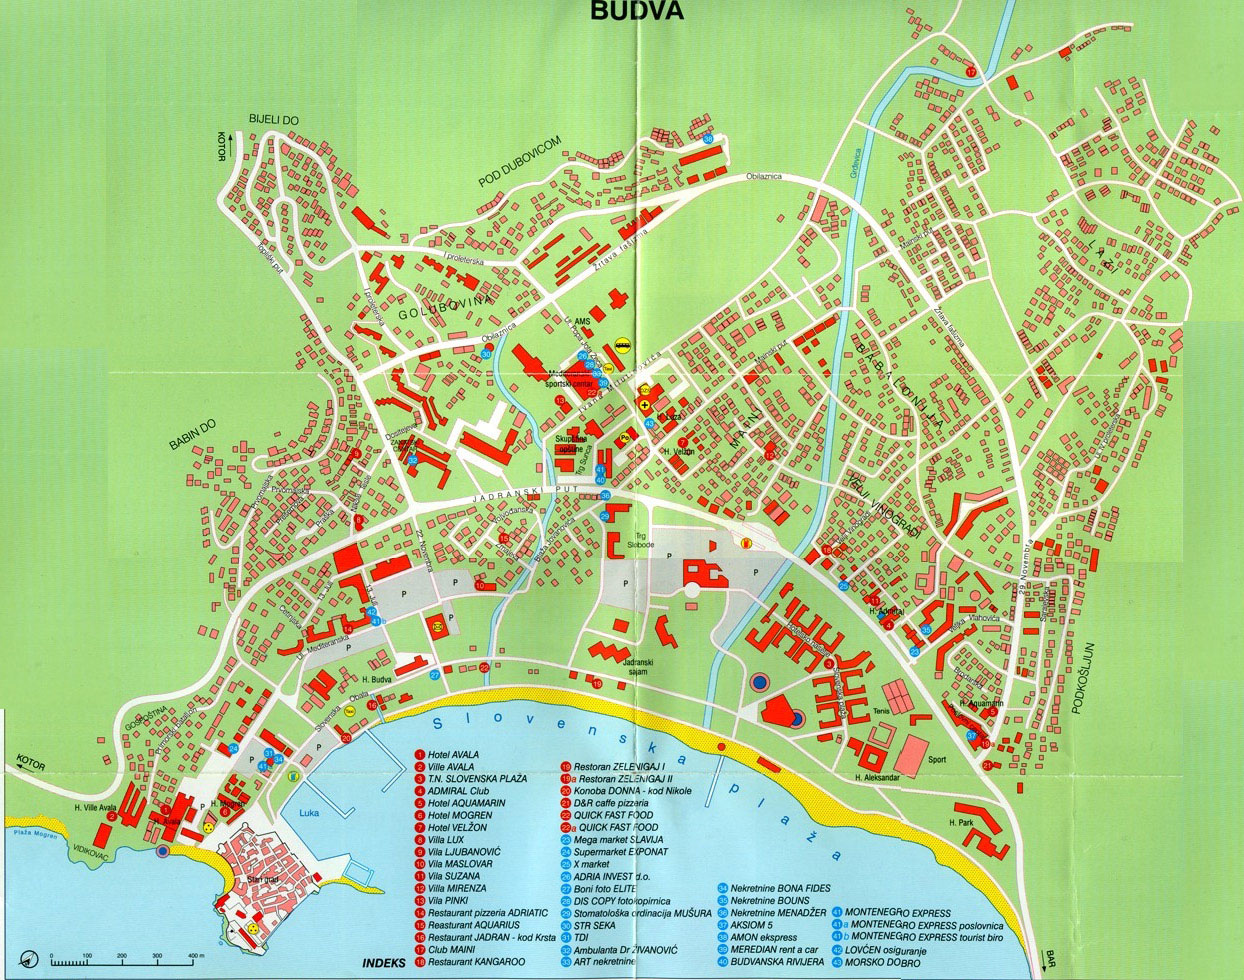 Large Budva Maps For Free Download And Print High Resolution And